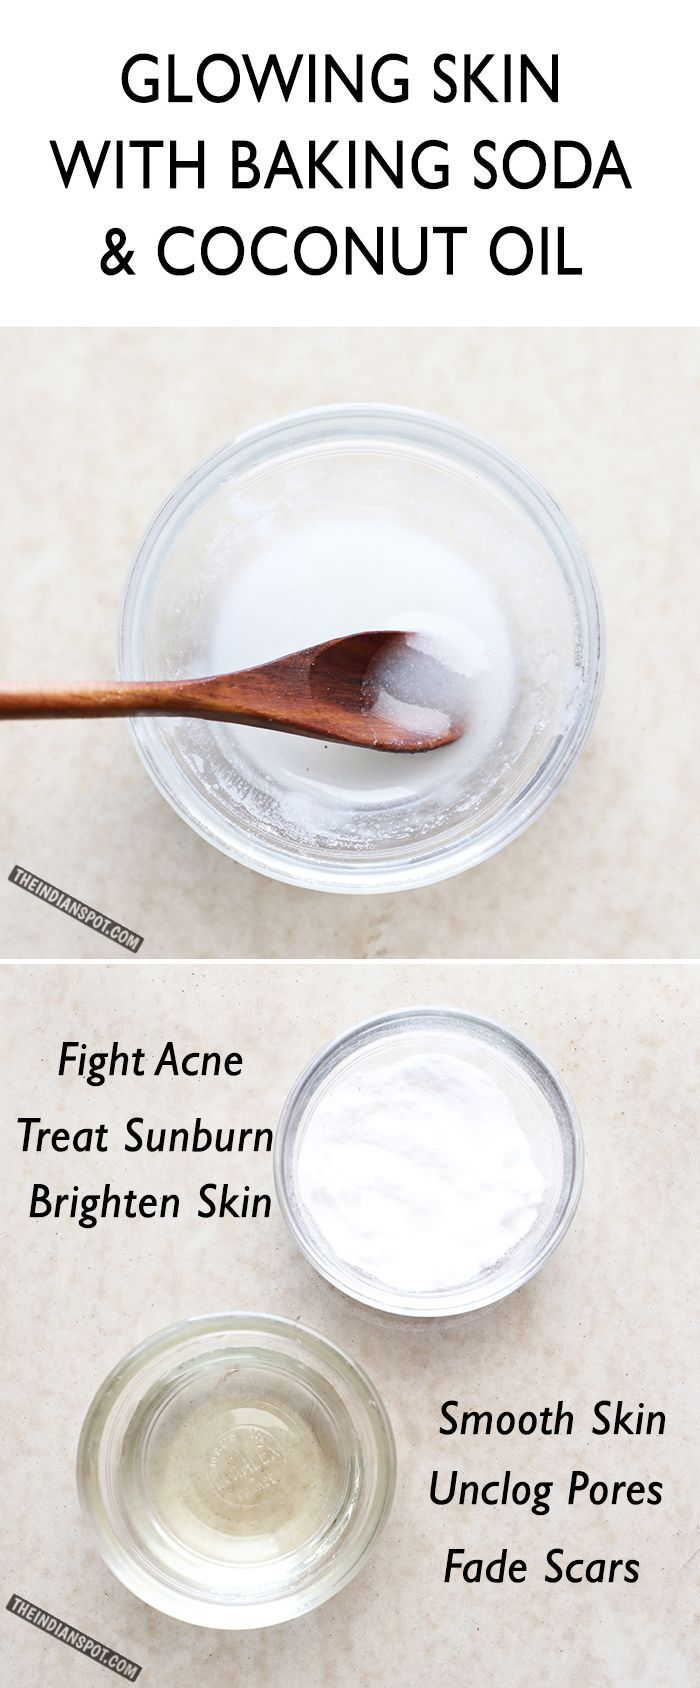 DIY face/body scrub along with its benefits: RECIPE: ½ cup coconut oil 2/3 cup baking soda 5 drops essential oils ( optional ) Method- Take coconut oil in a medium sized bowl. Melt it a bit if solid. (Baking Face)